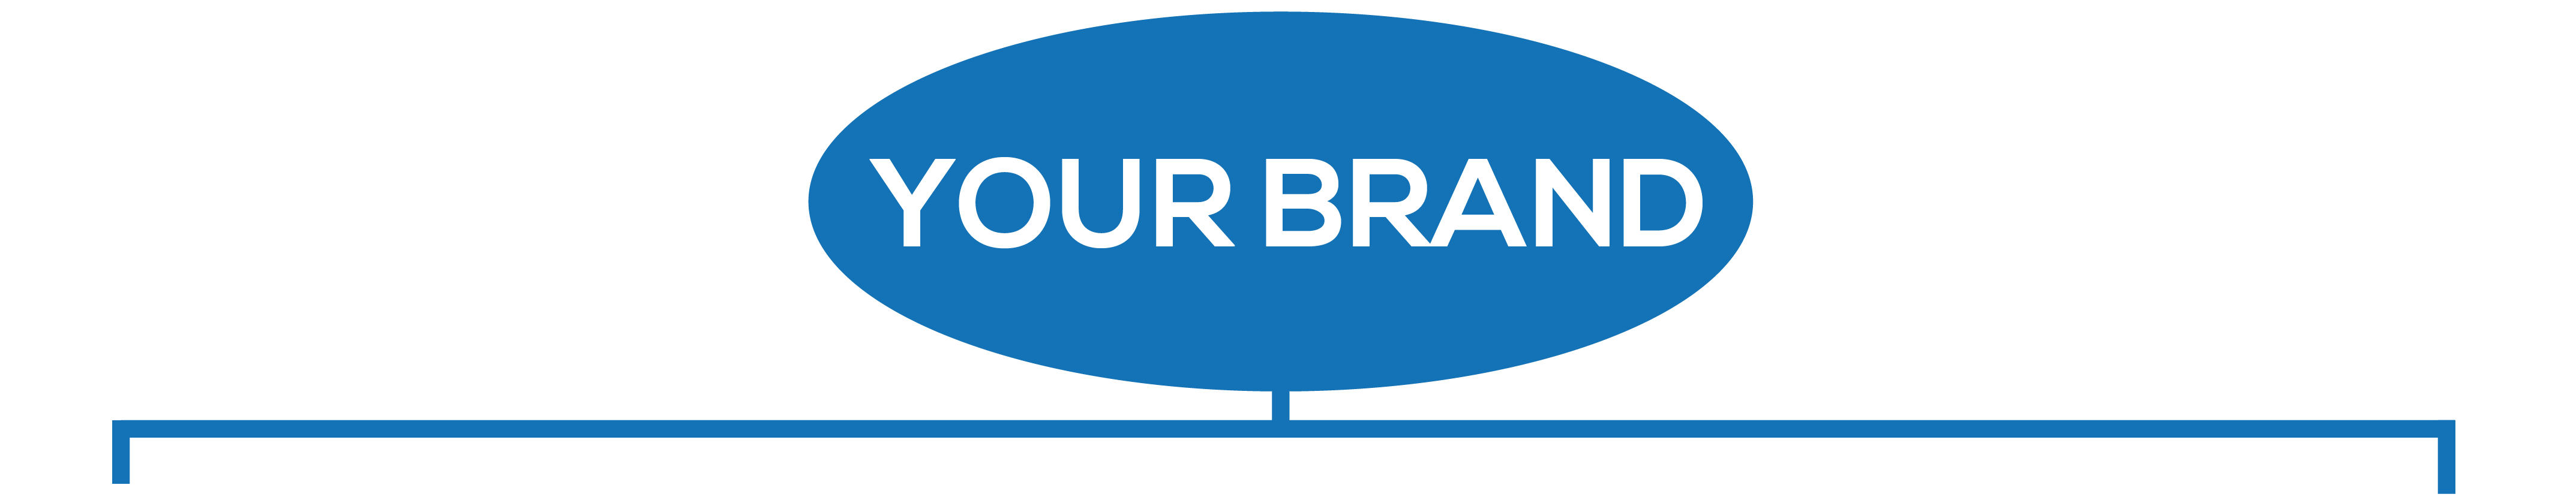 Your Brand Banner